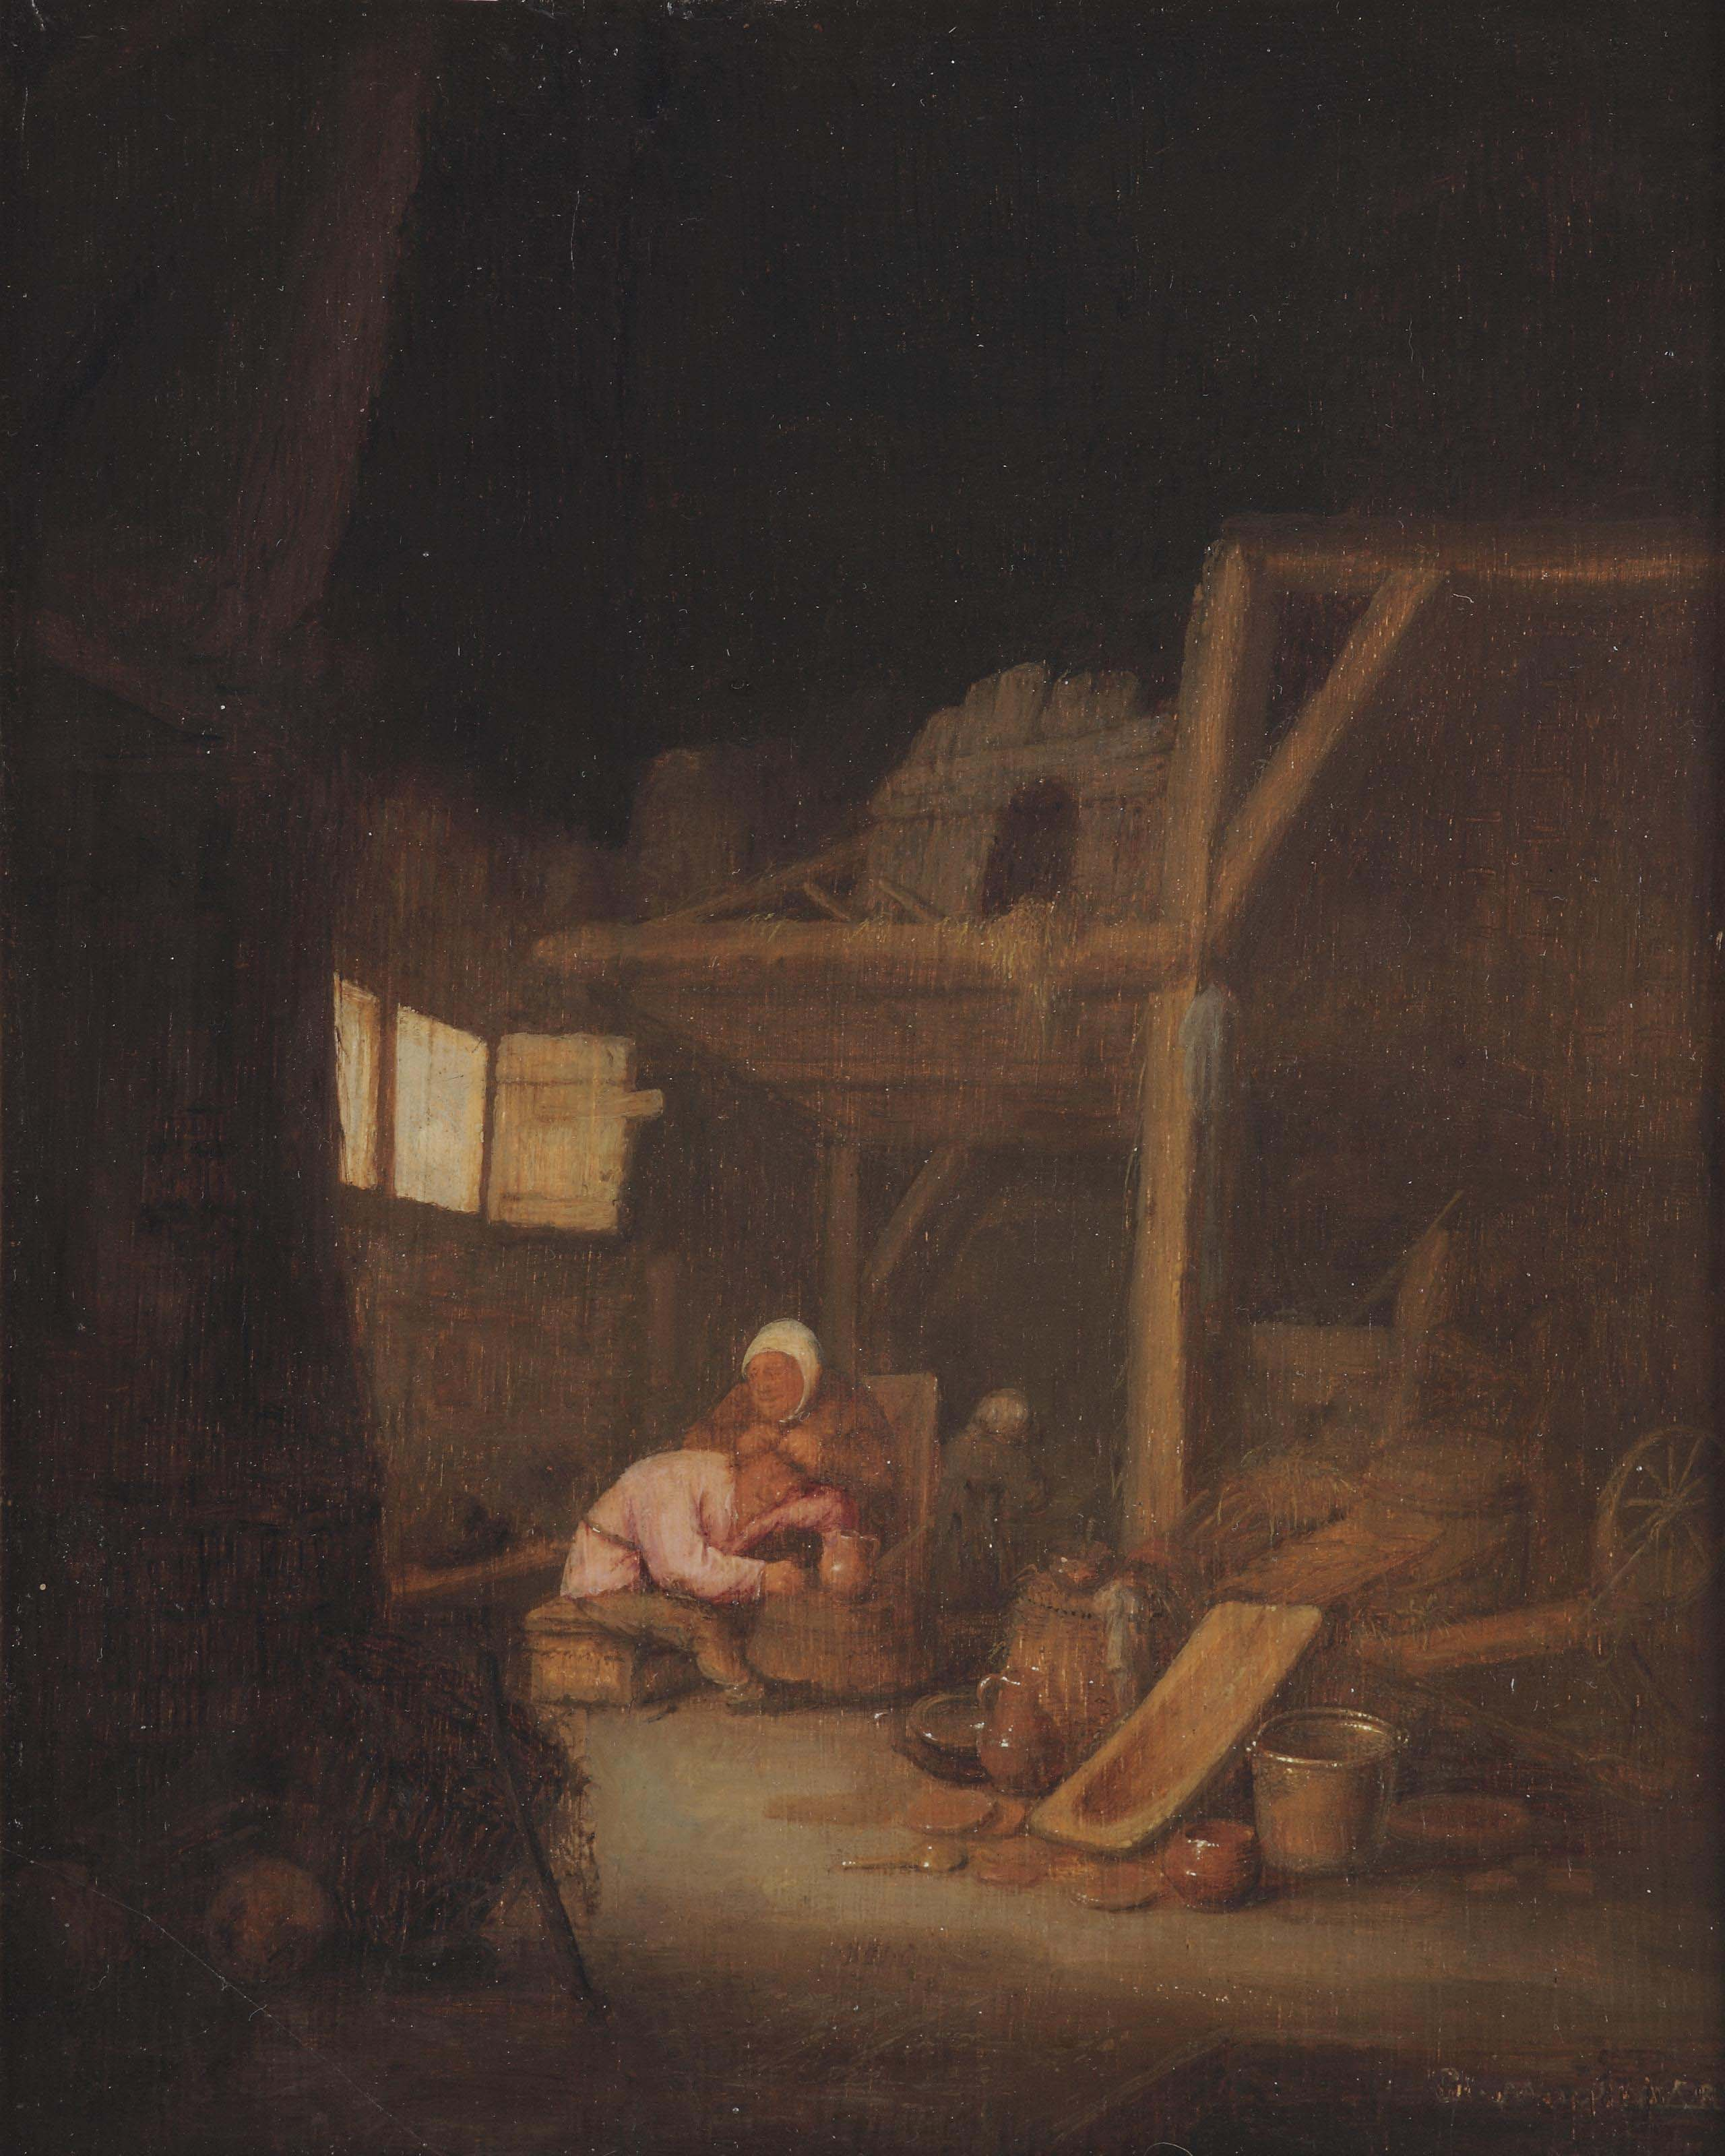 A barn interior with a peasant woman delousing a man